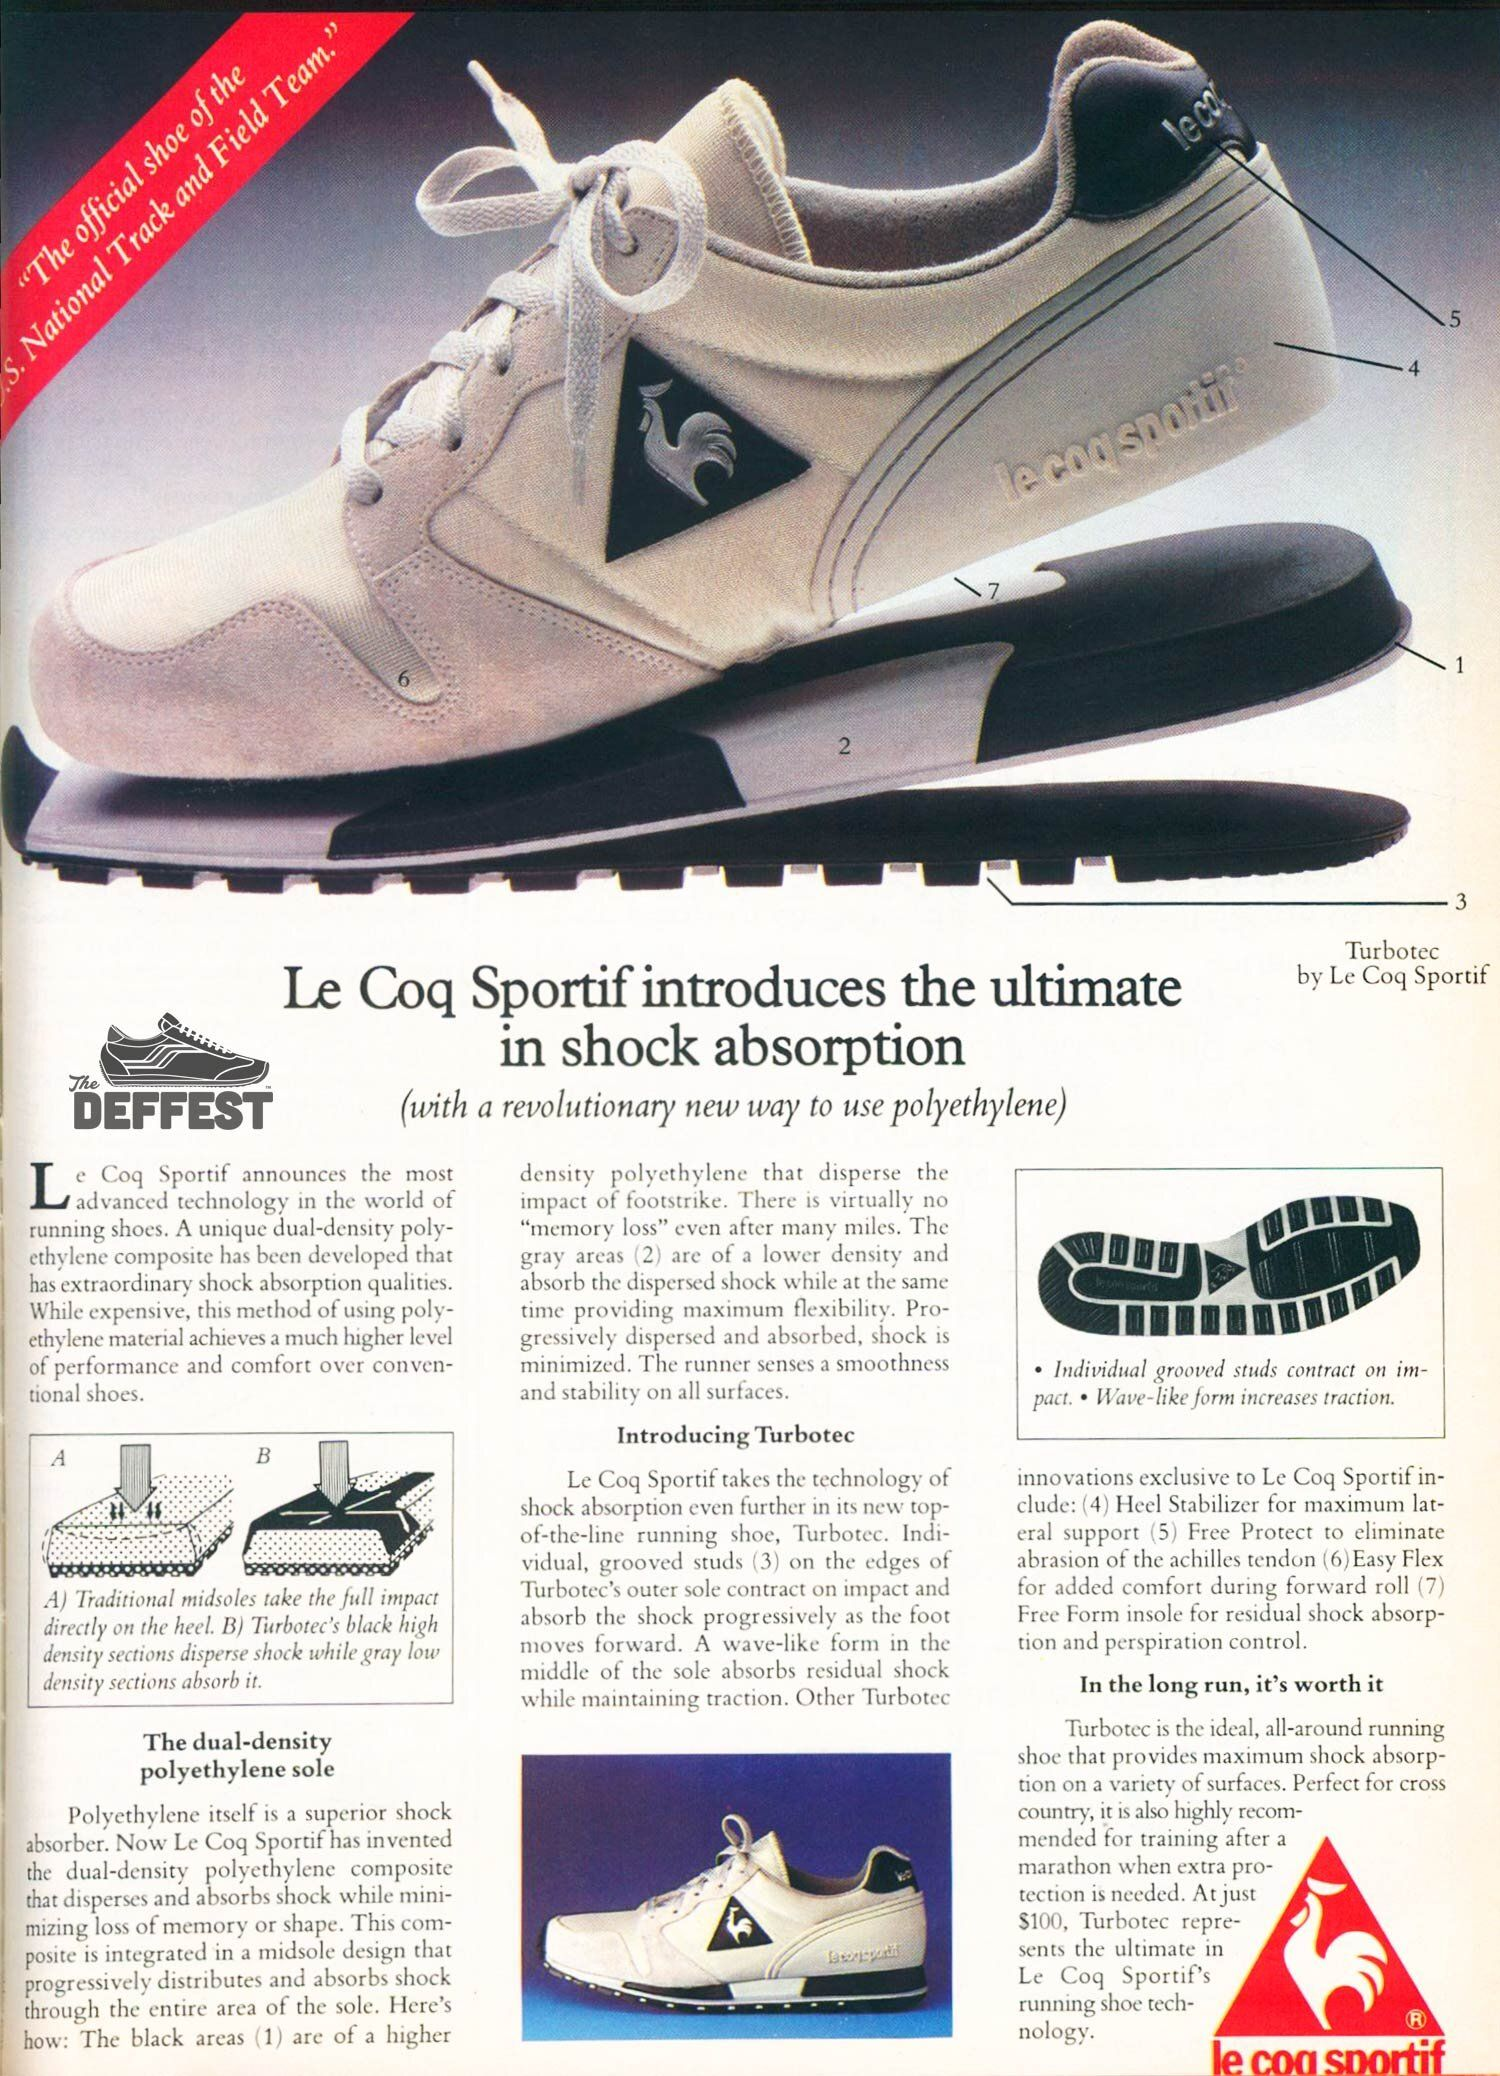 Le Coq Sportif Turbotec Vintage Sneaker Ad With Images Vintage